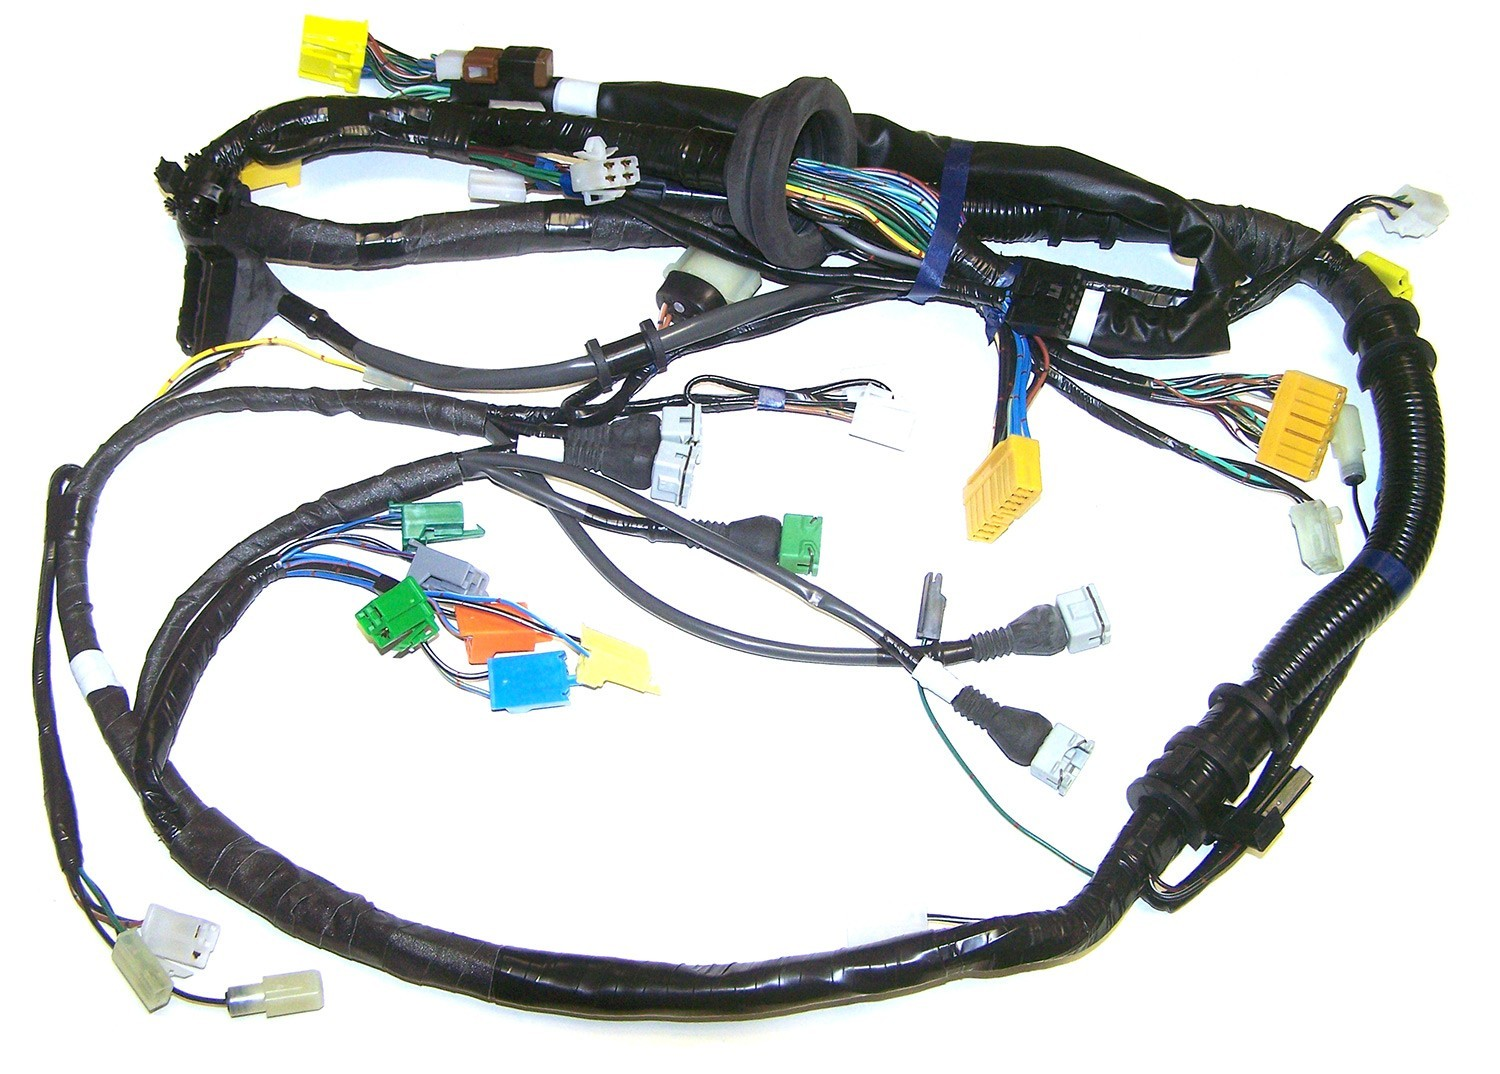 N332 18 051KDetail 87 88 turbo rx7 engine wiring harness (n332 18 051k) engine wiring harness at soozxer.org